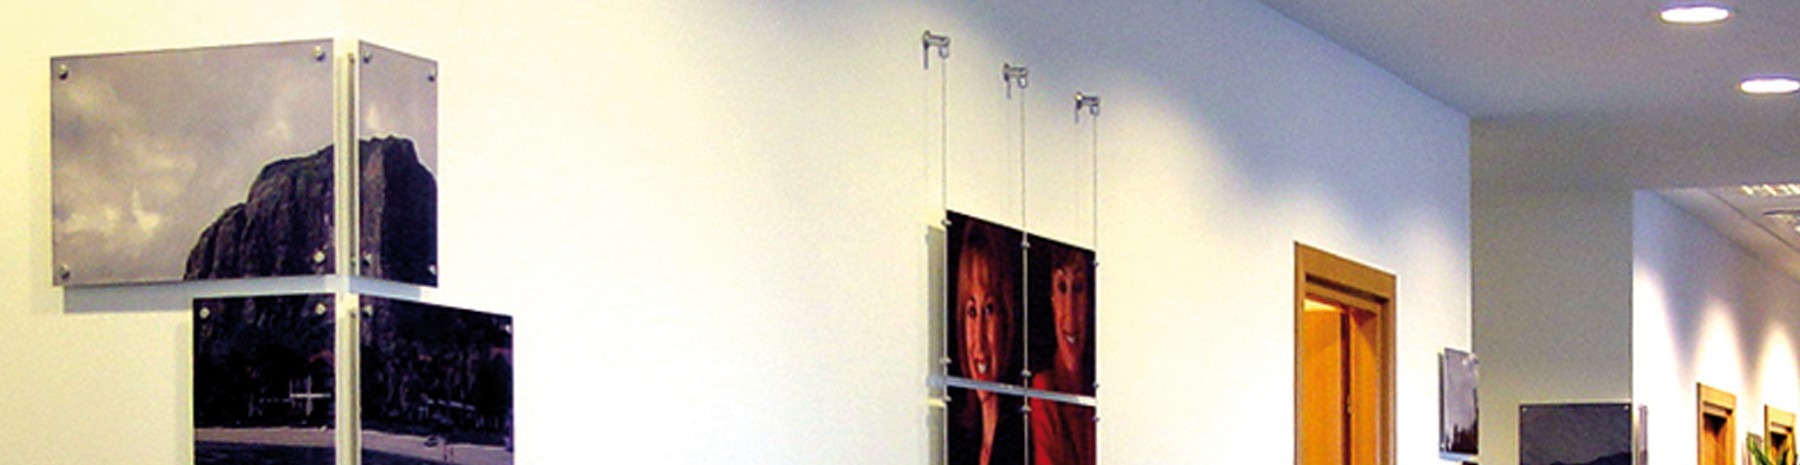 Poster holder plexi diameter 3mm for your suspended displays